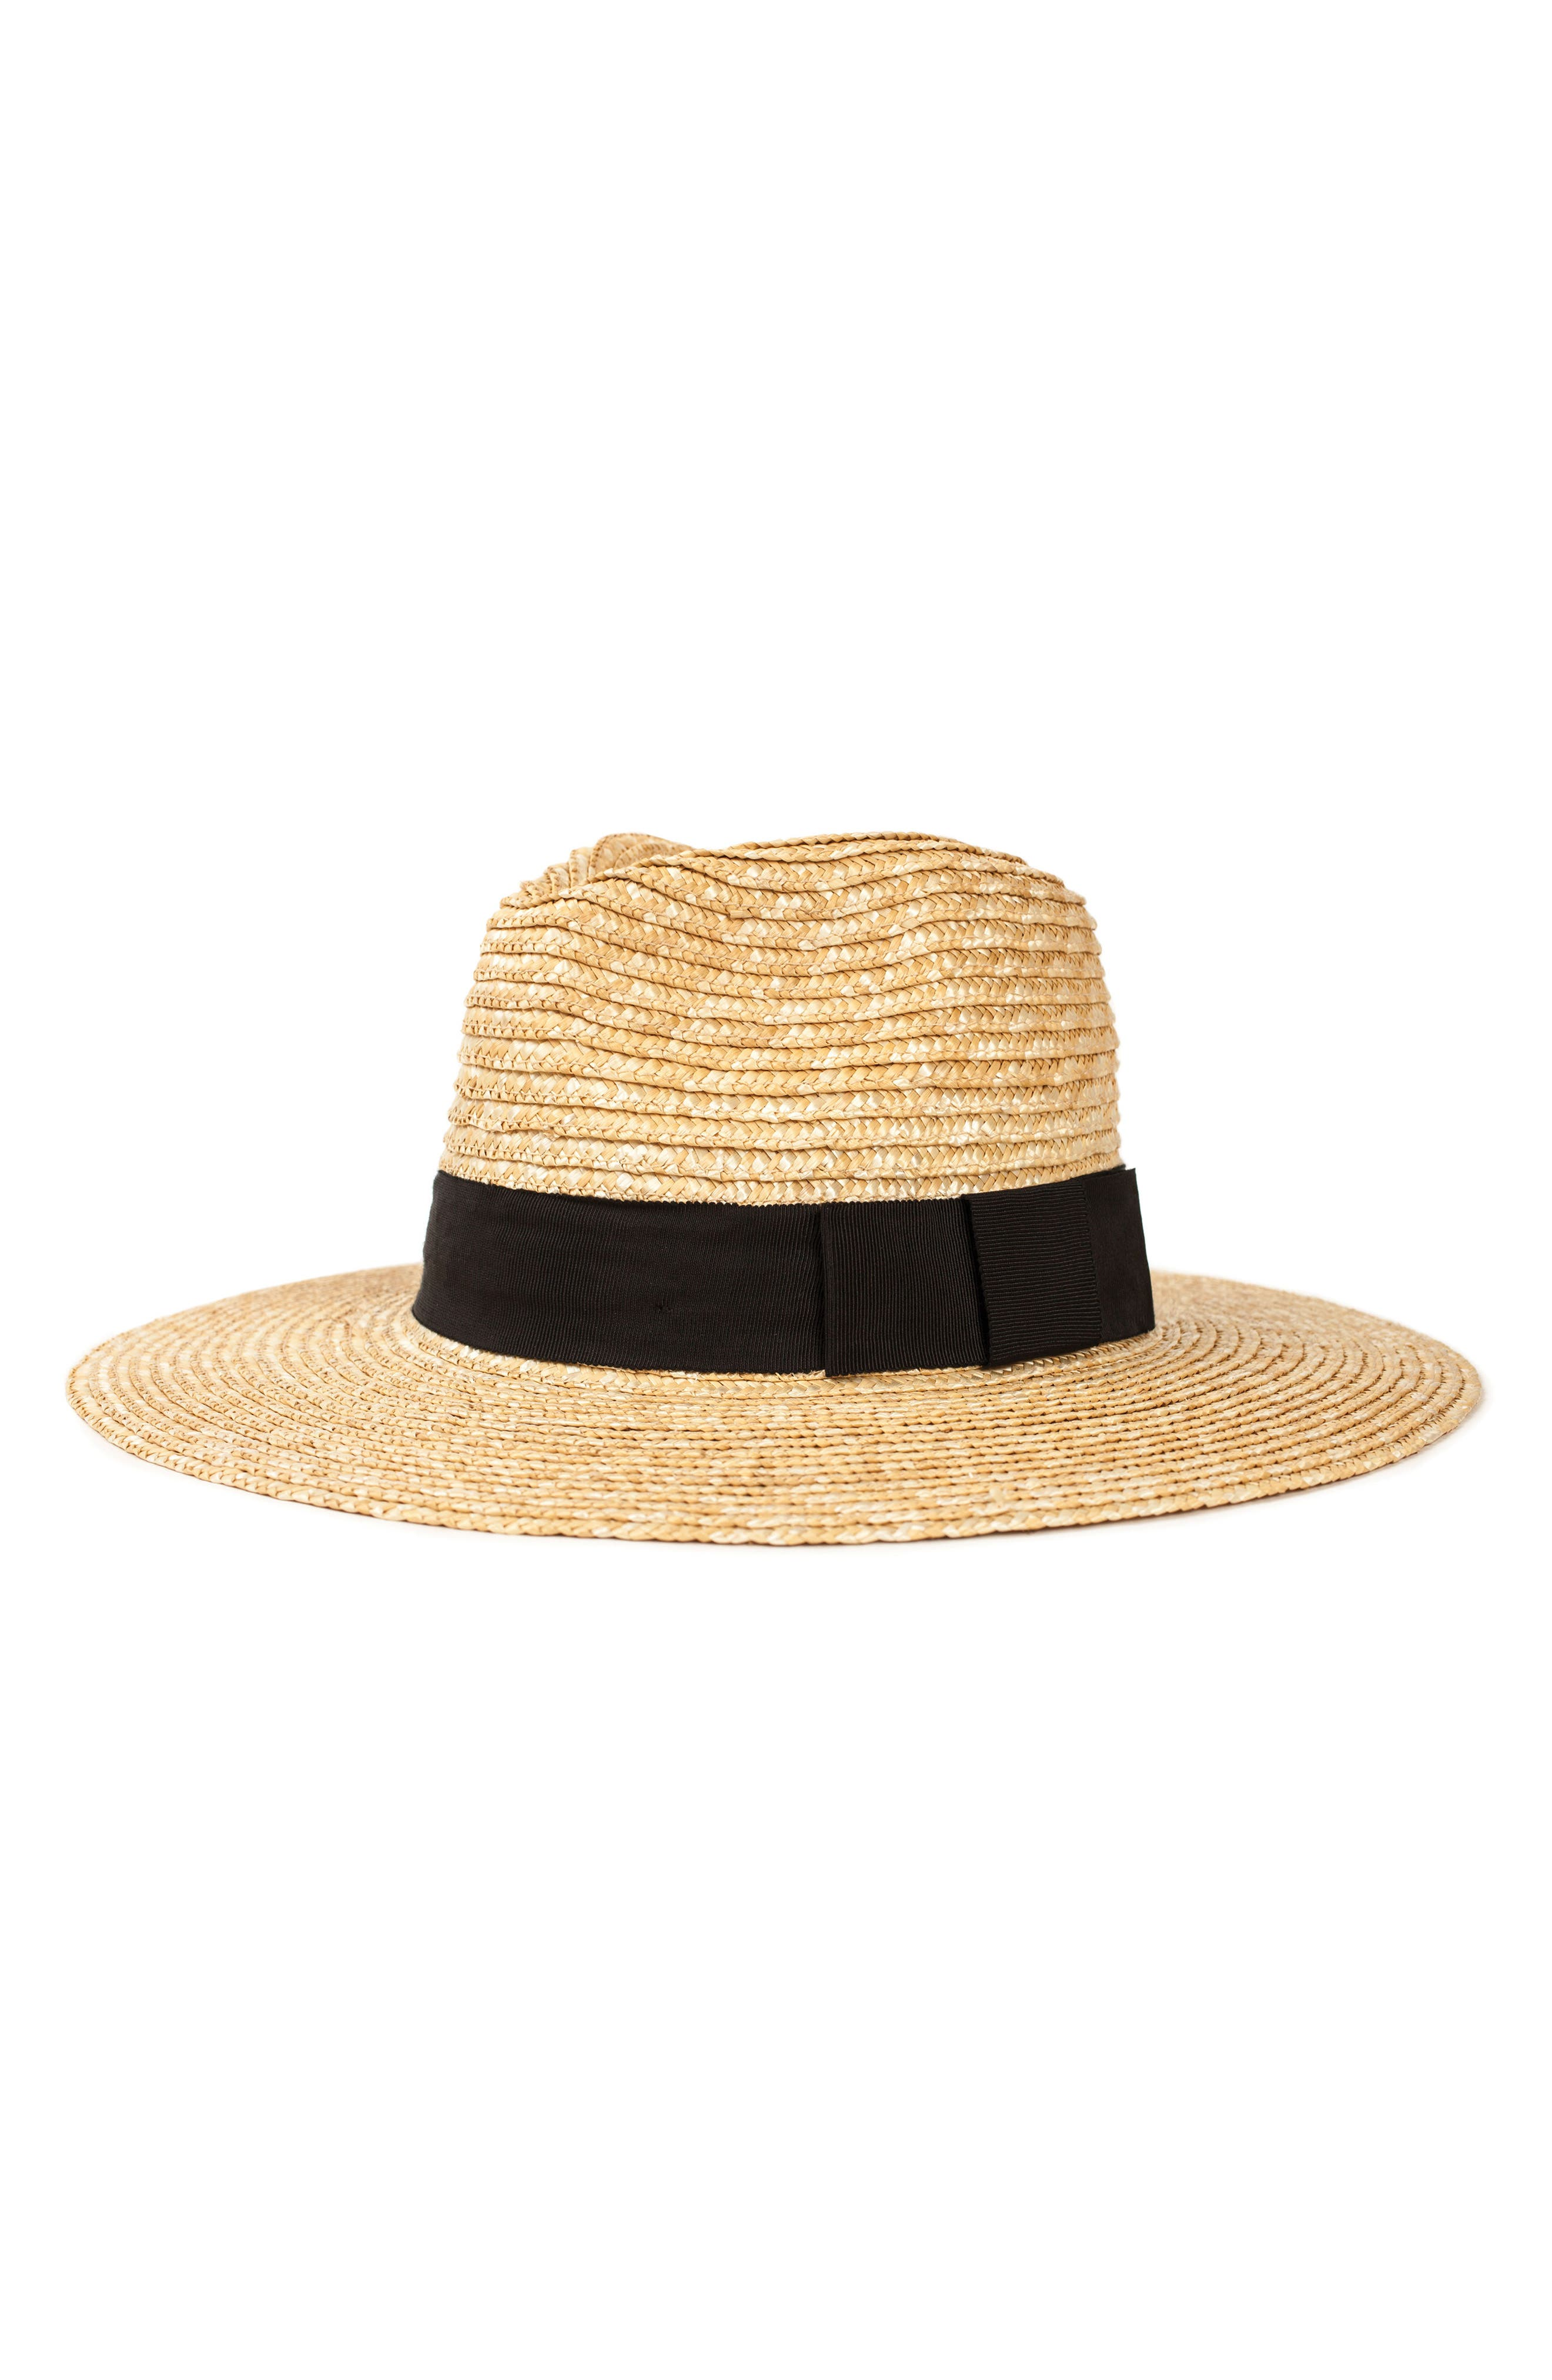 'Joanna' Straw Hat,                         Main,                         color, Honey